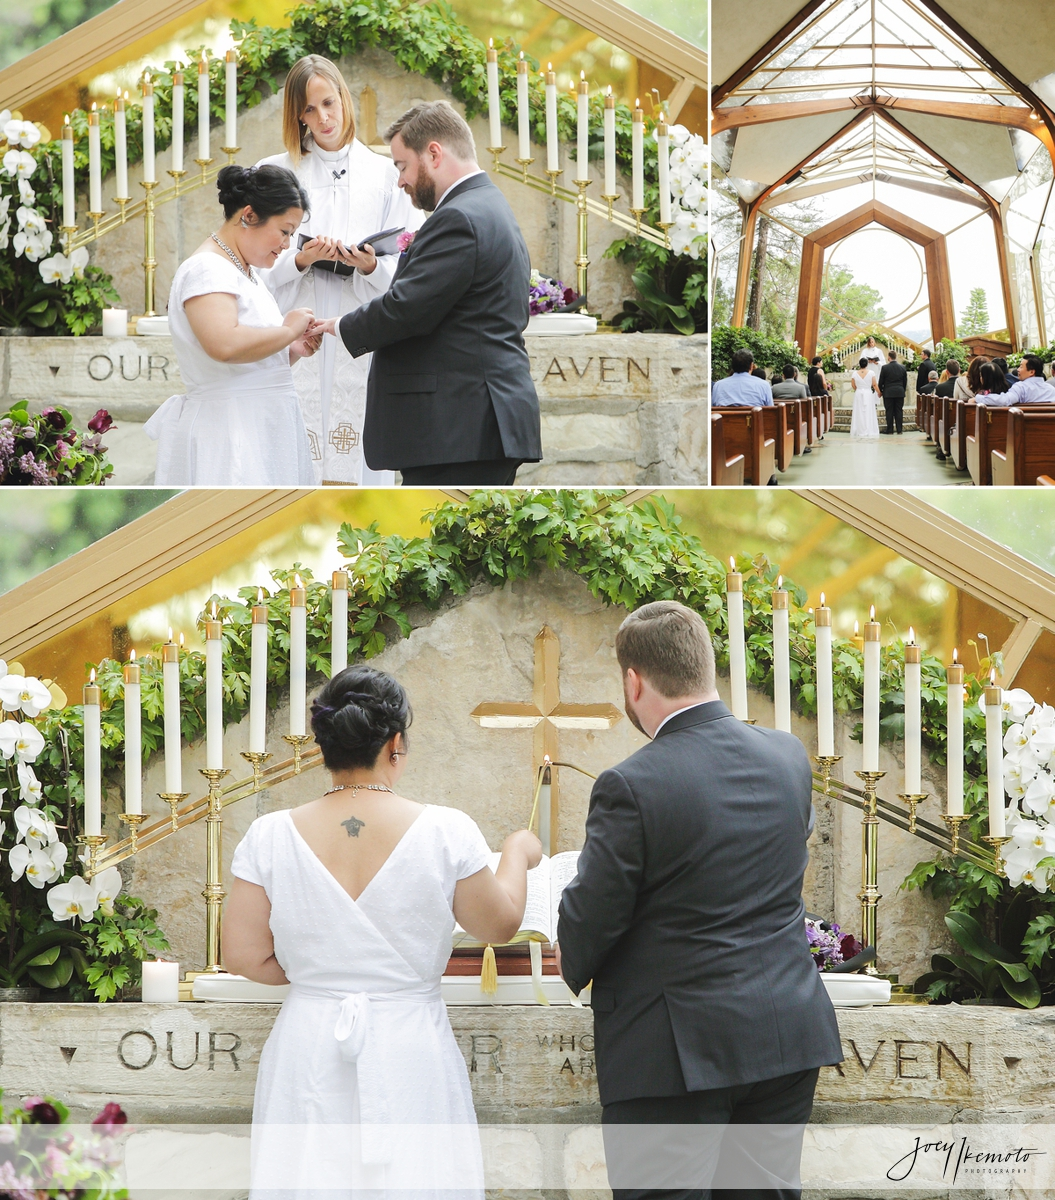 Palos Verdes Wedding Venues: Wayfarers Chapel Palos Verdes And The Federal Bar Long